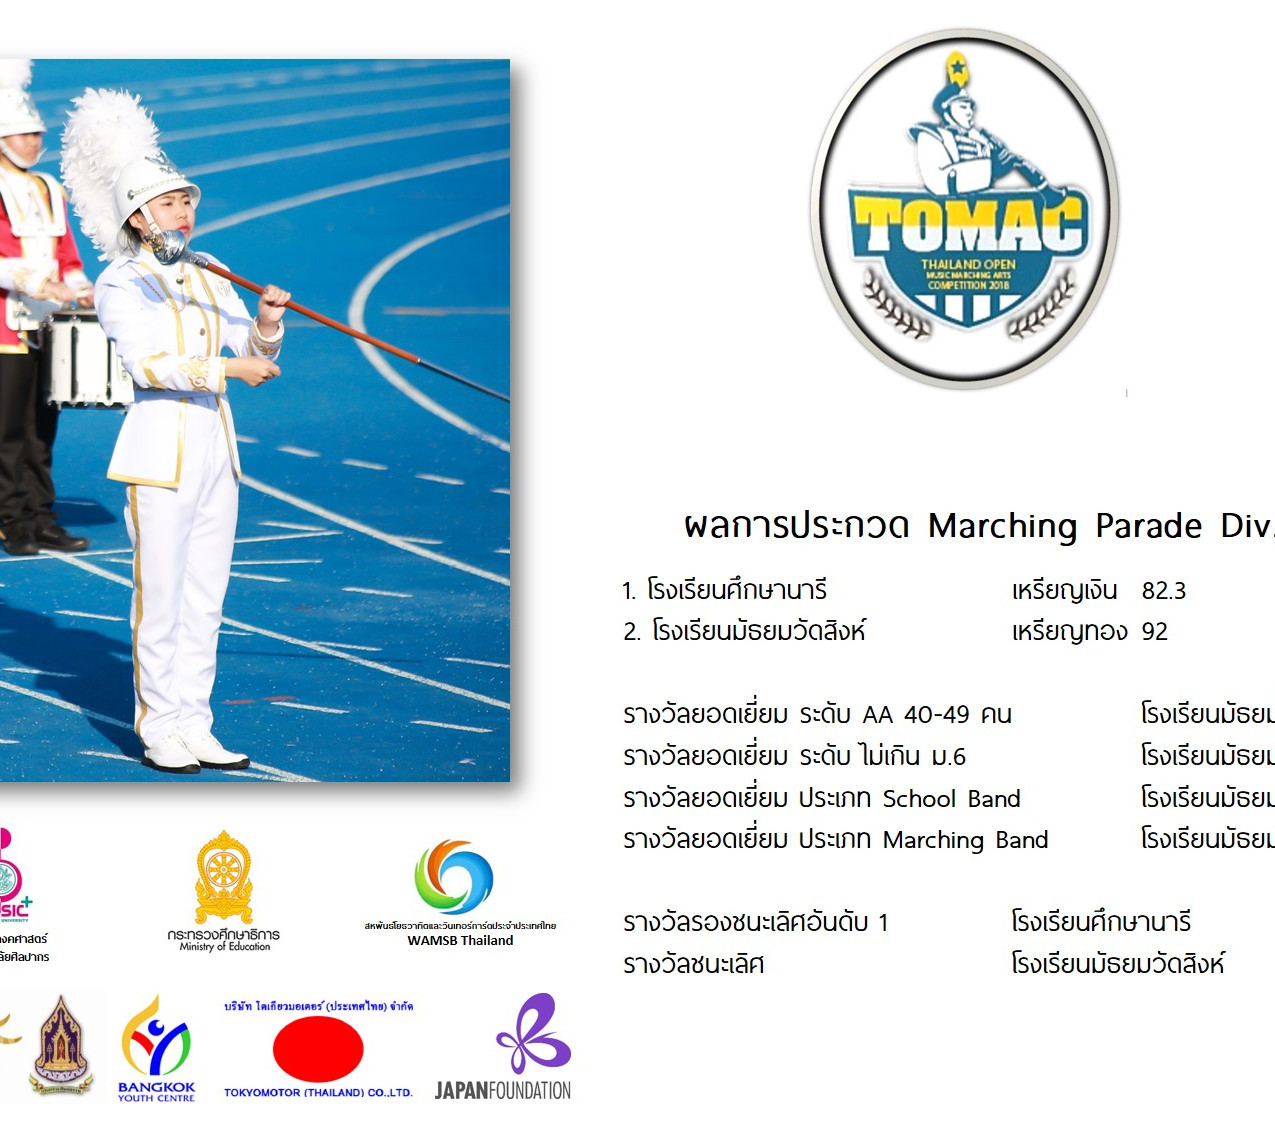 ประเภท Marching Parade Div.1